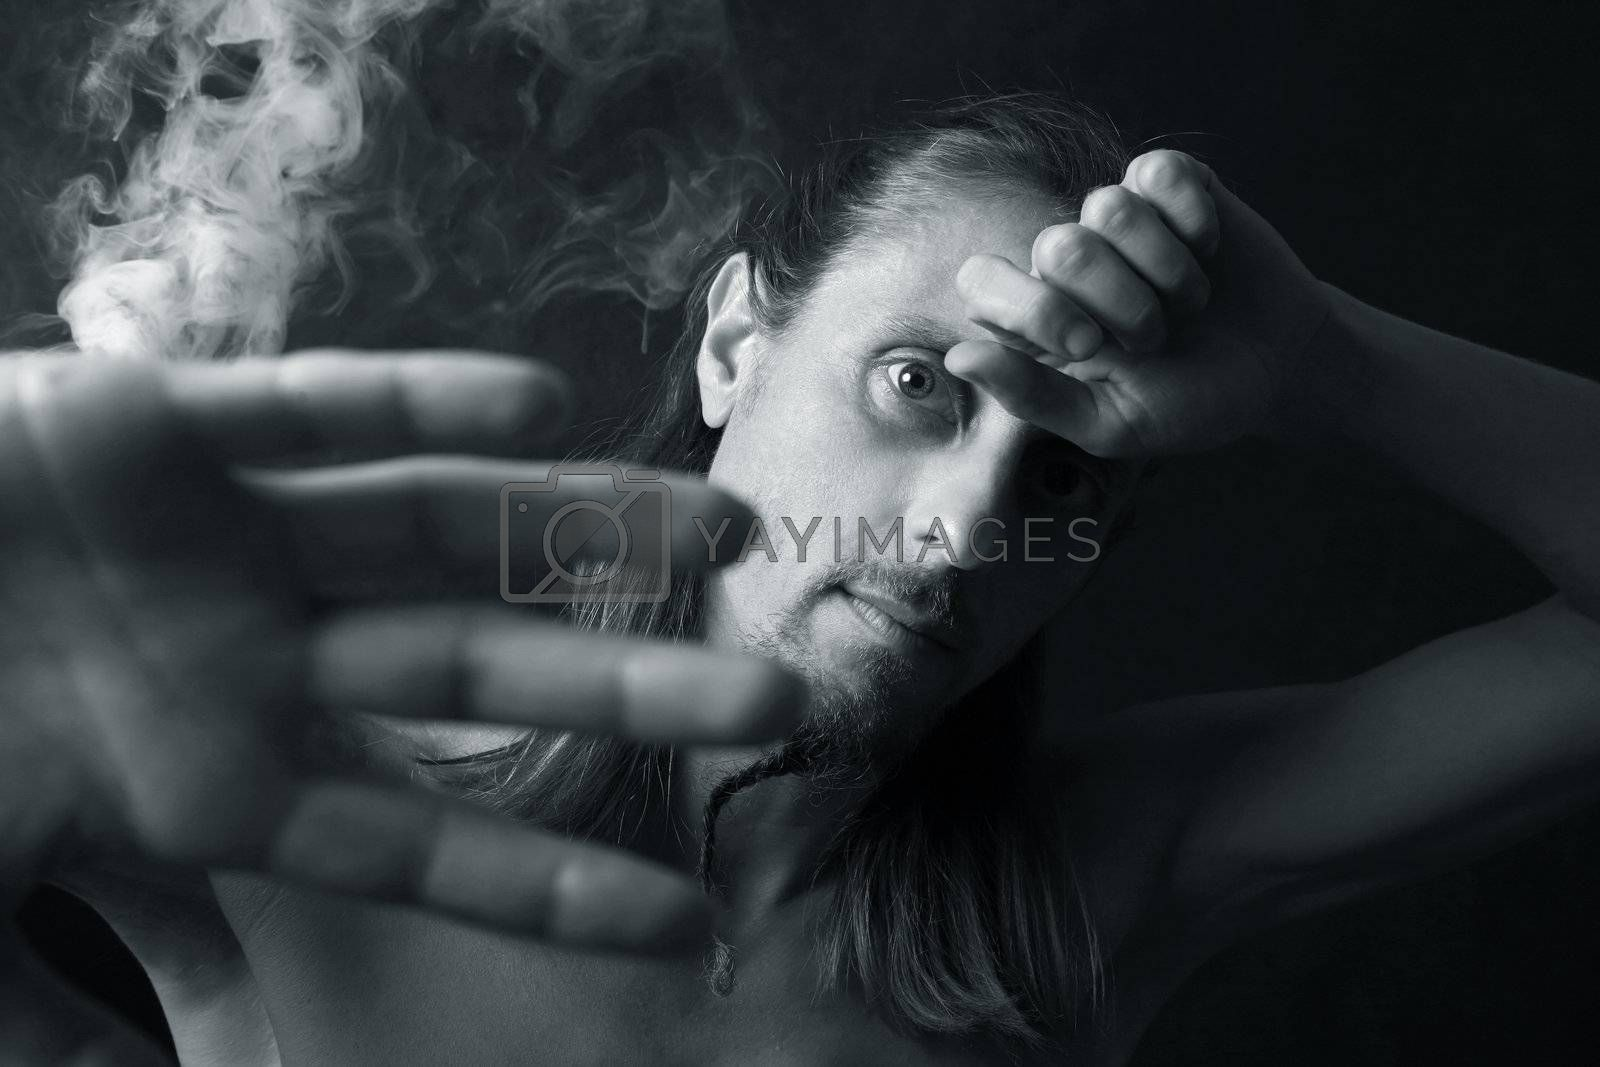 Portrait in a smoke by friday